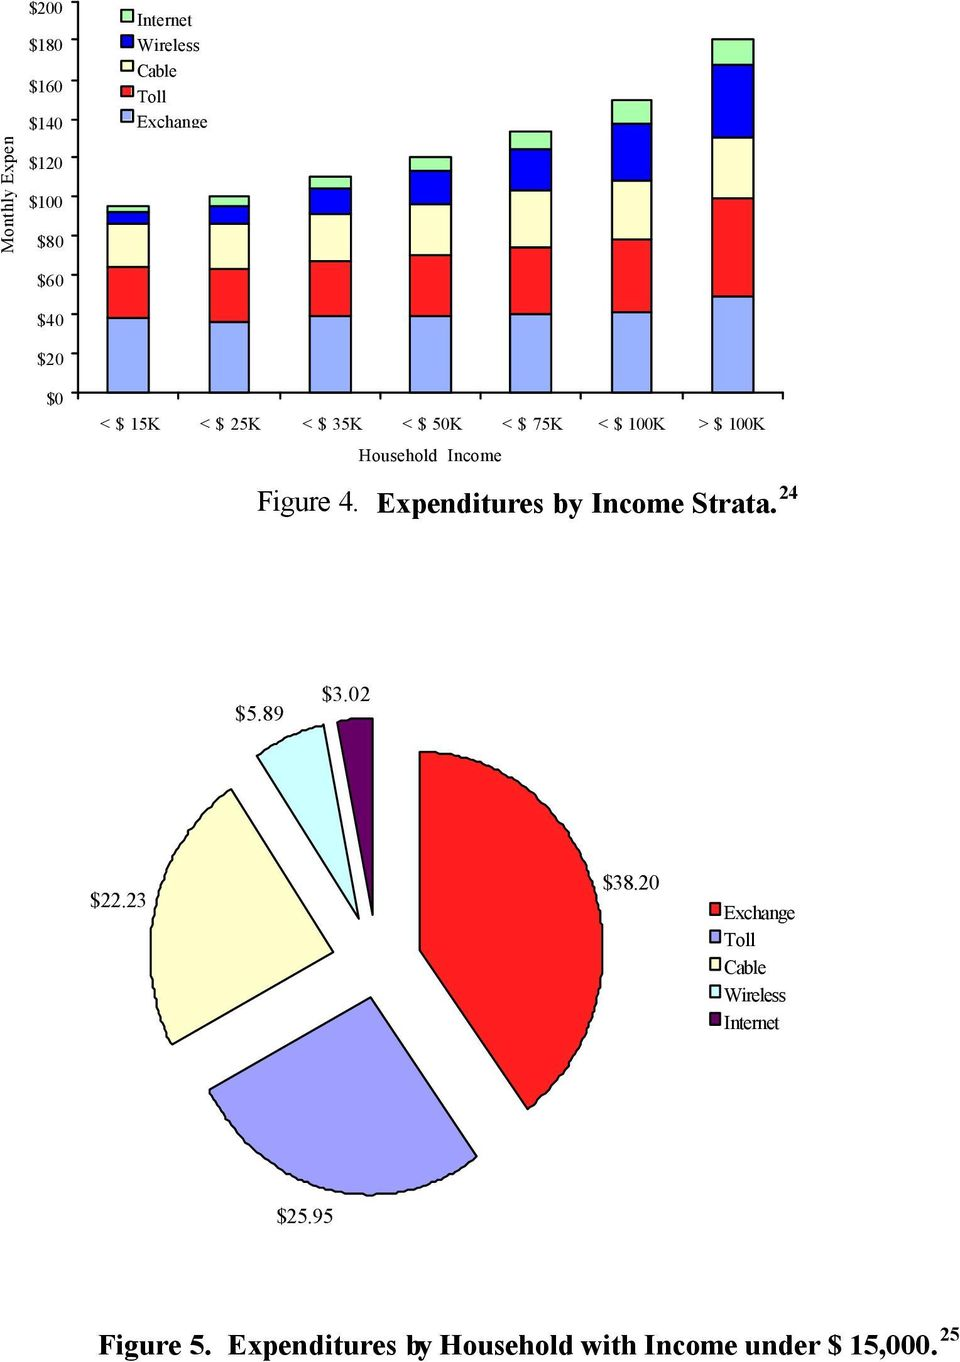 Figure 4. Expenditures by Income Strata. 24 $5.89 $3.02 $22.23 $38.